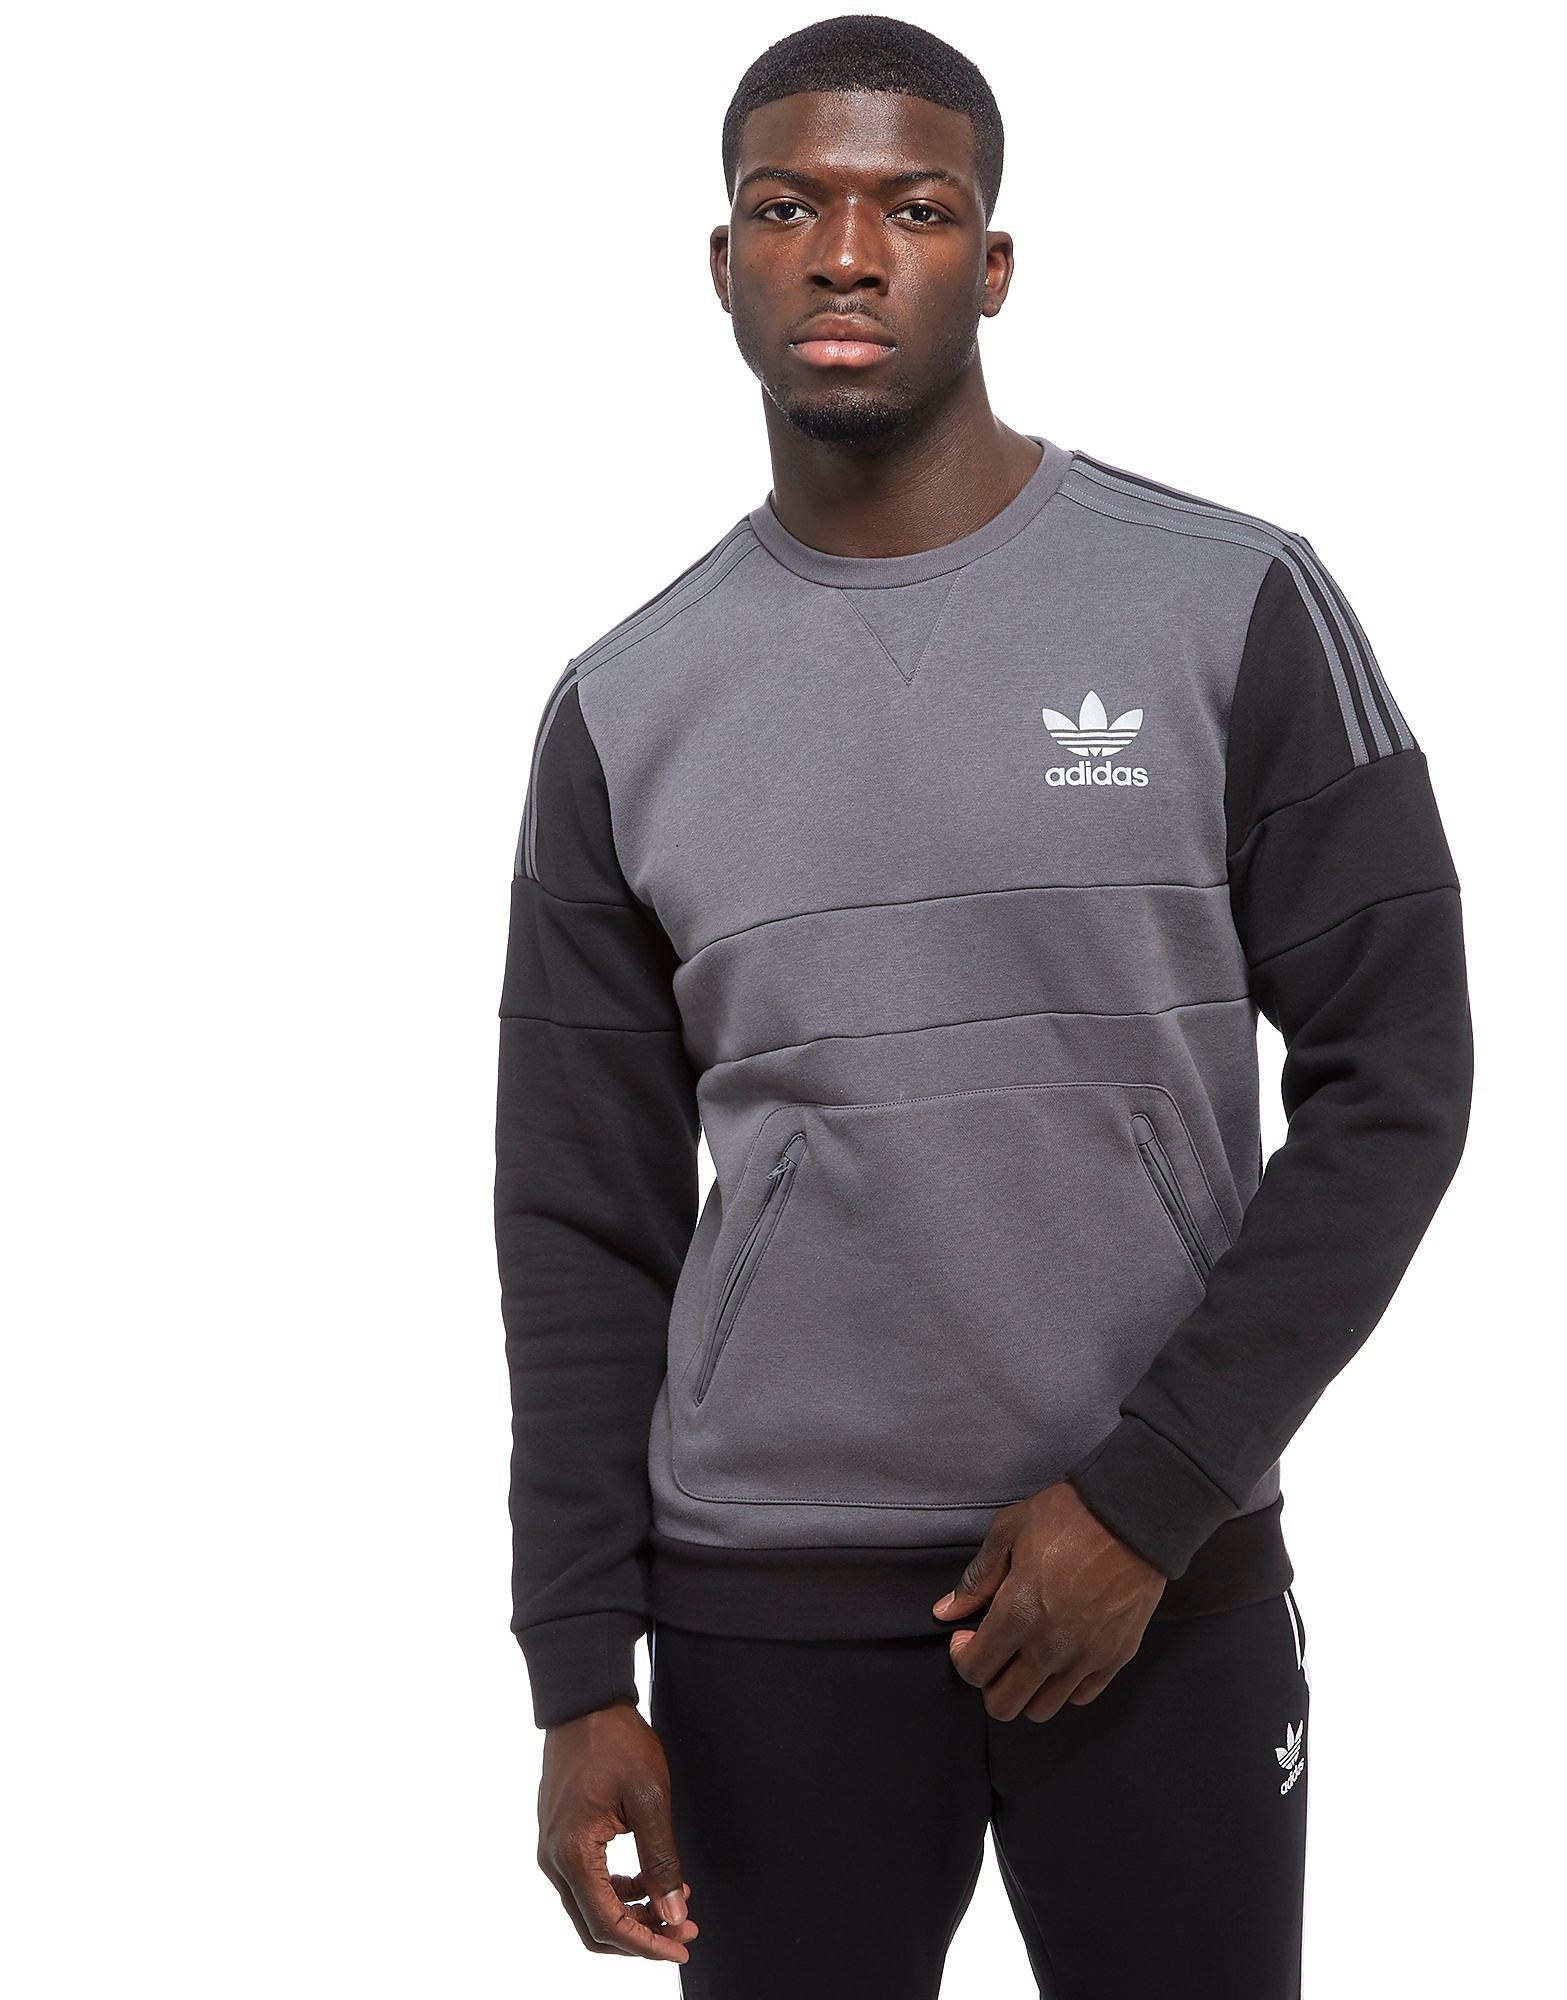 adidas Originals NMD Sweatshirt